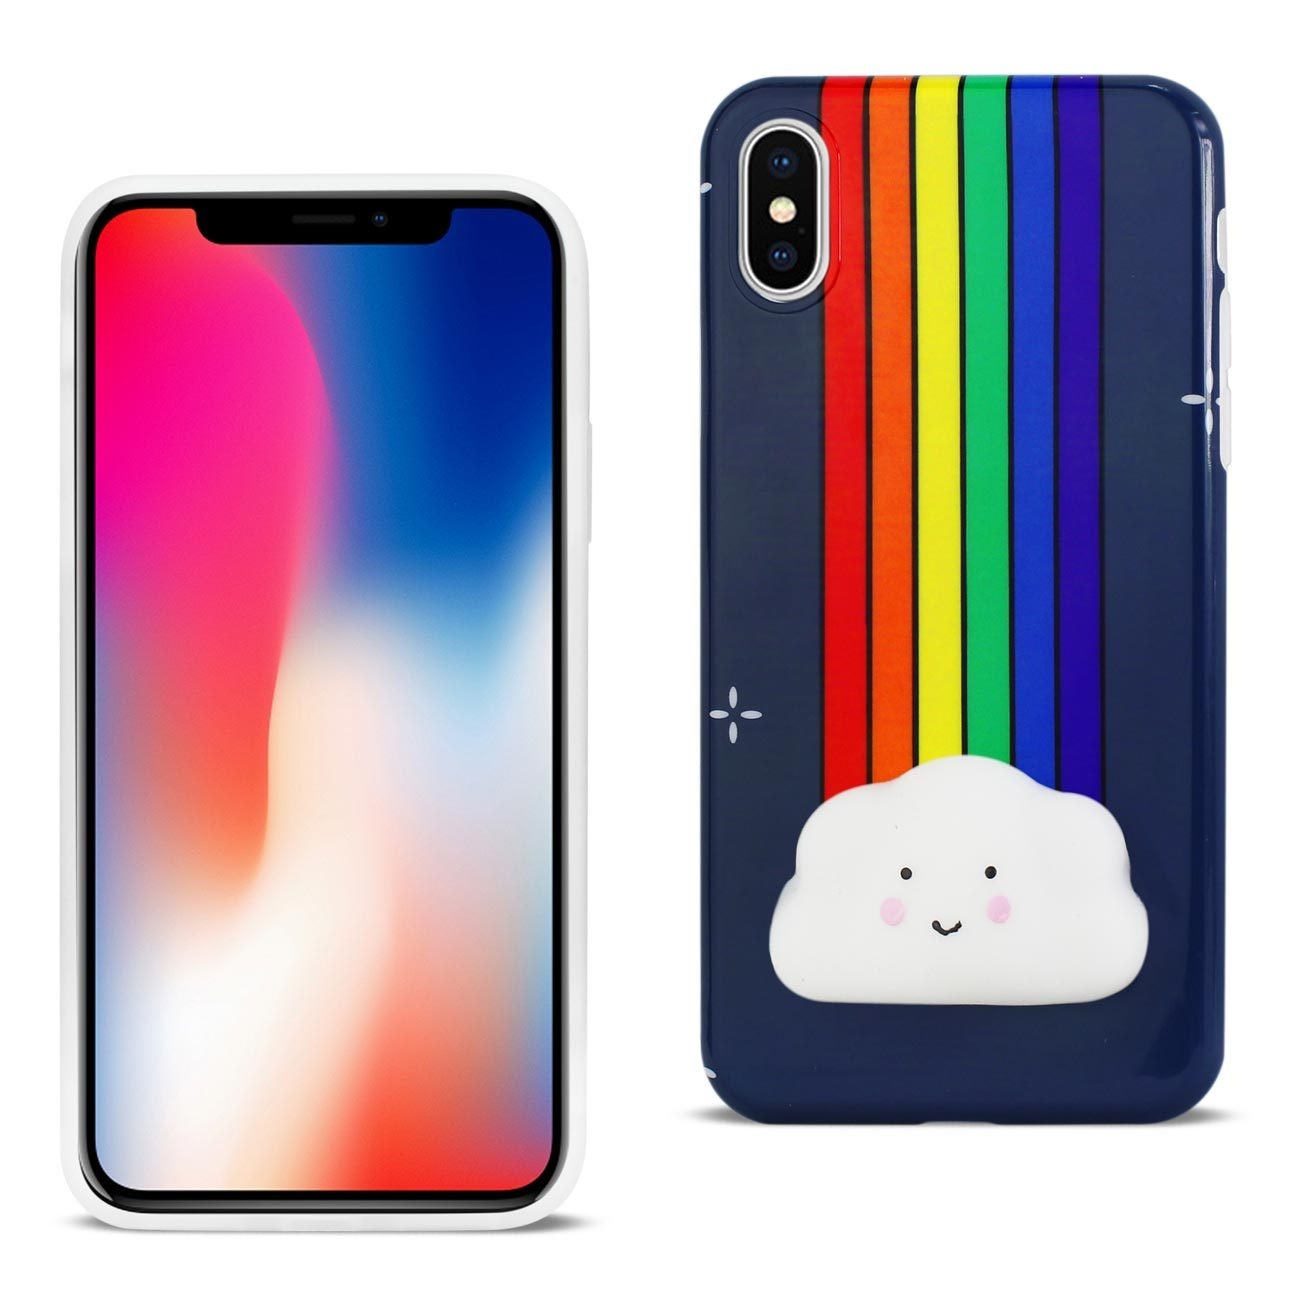 Reiko Iphone X Iphone Xs Tpu Design Case With 3d Soft Silicone